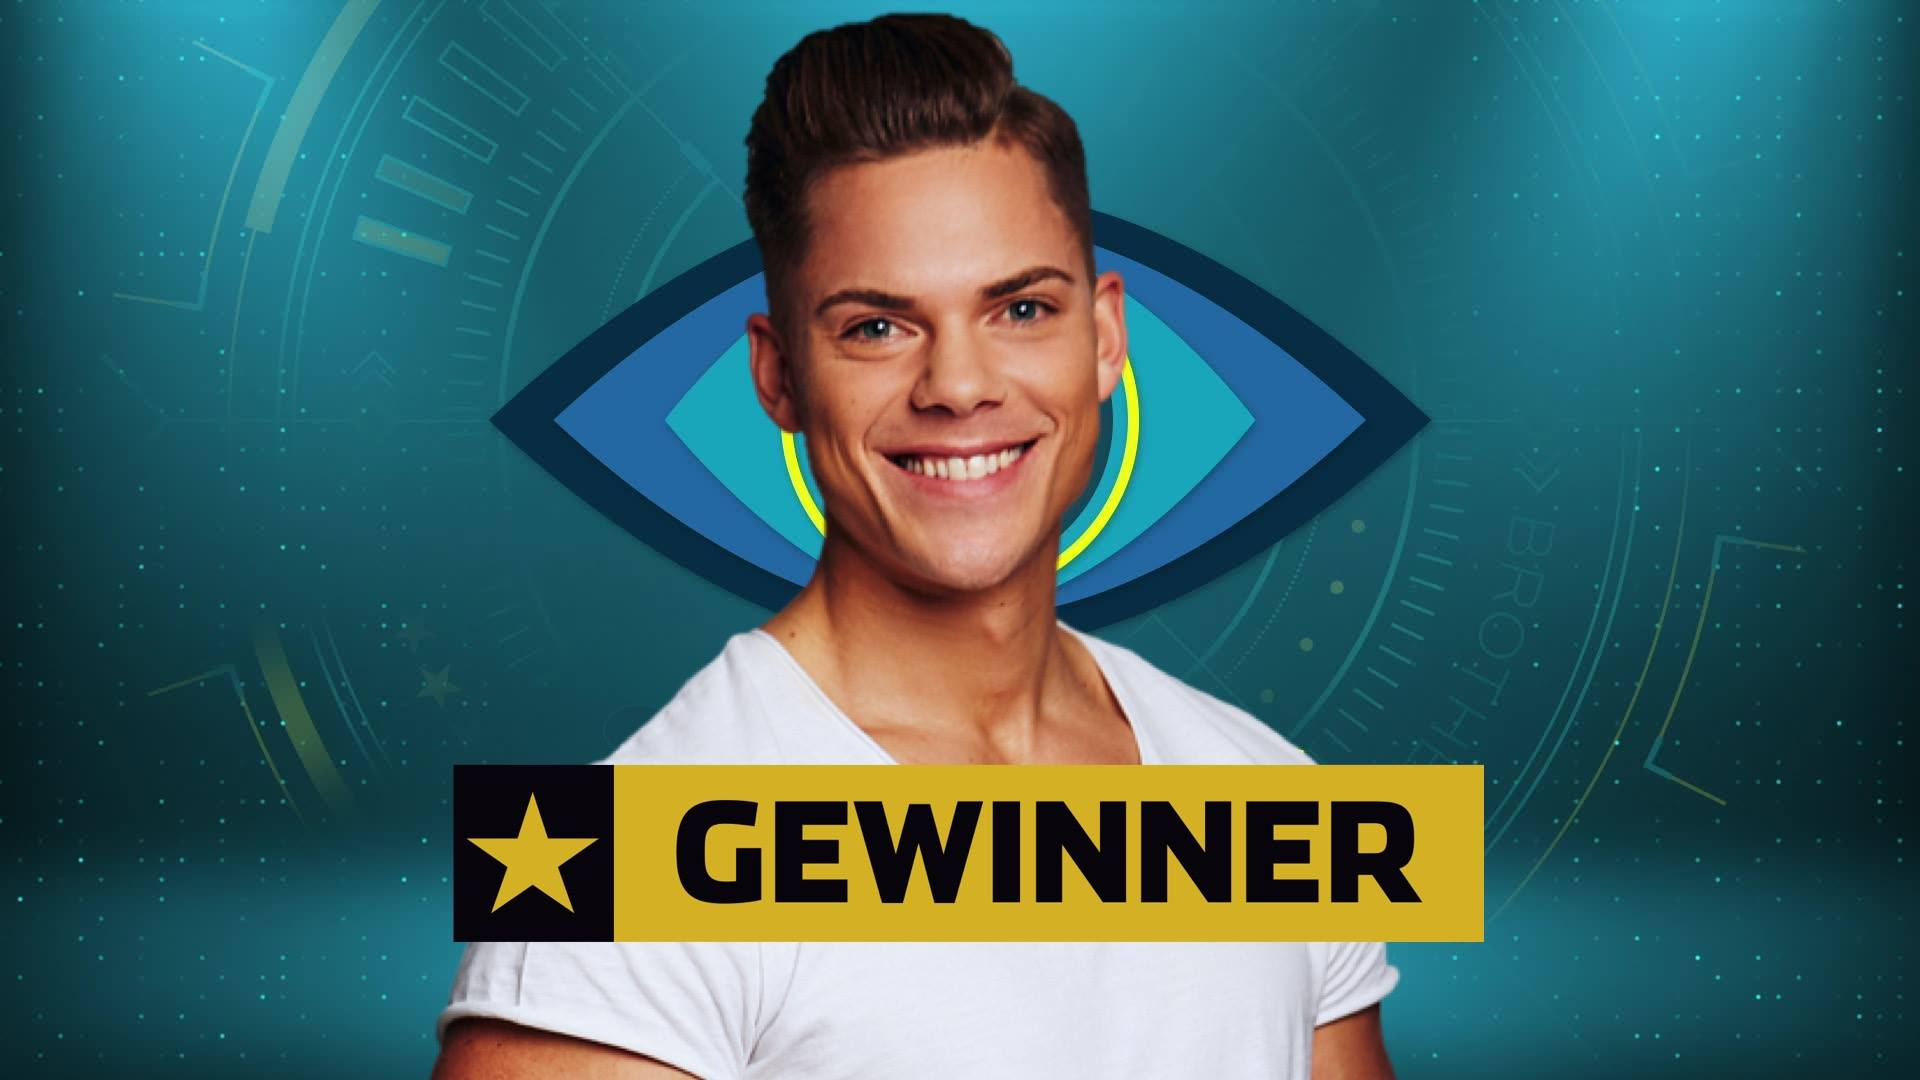 Big Brother Gewinner